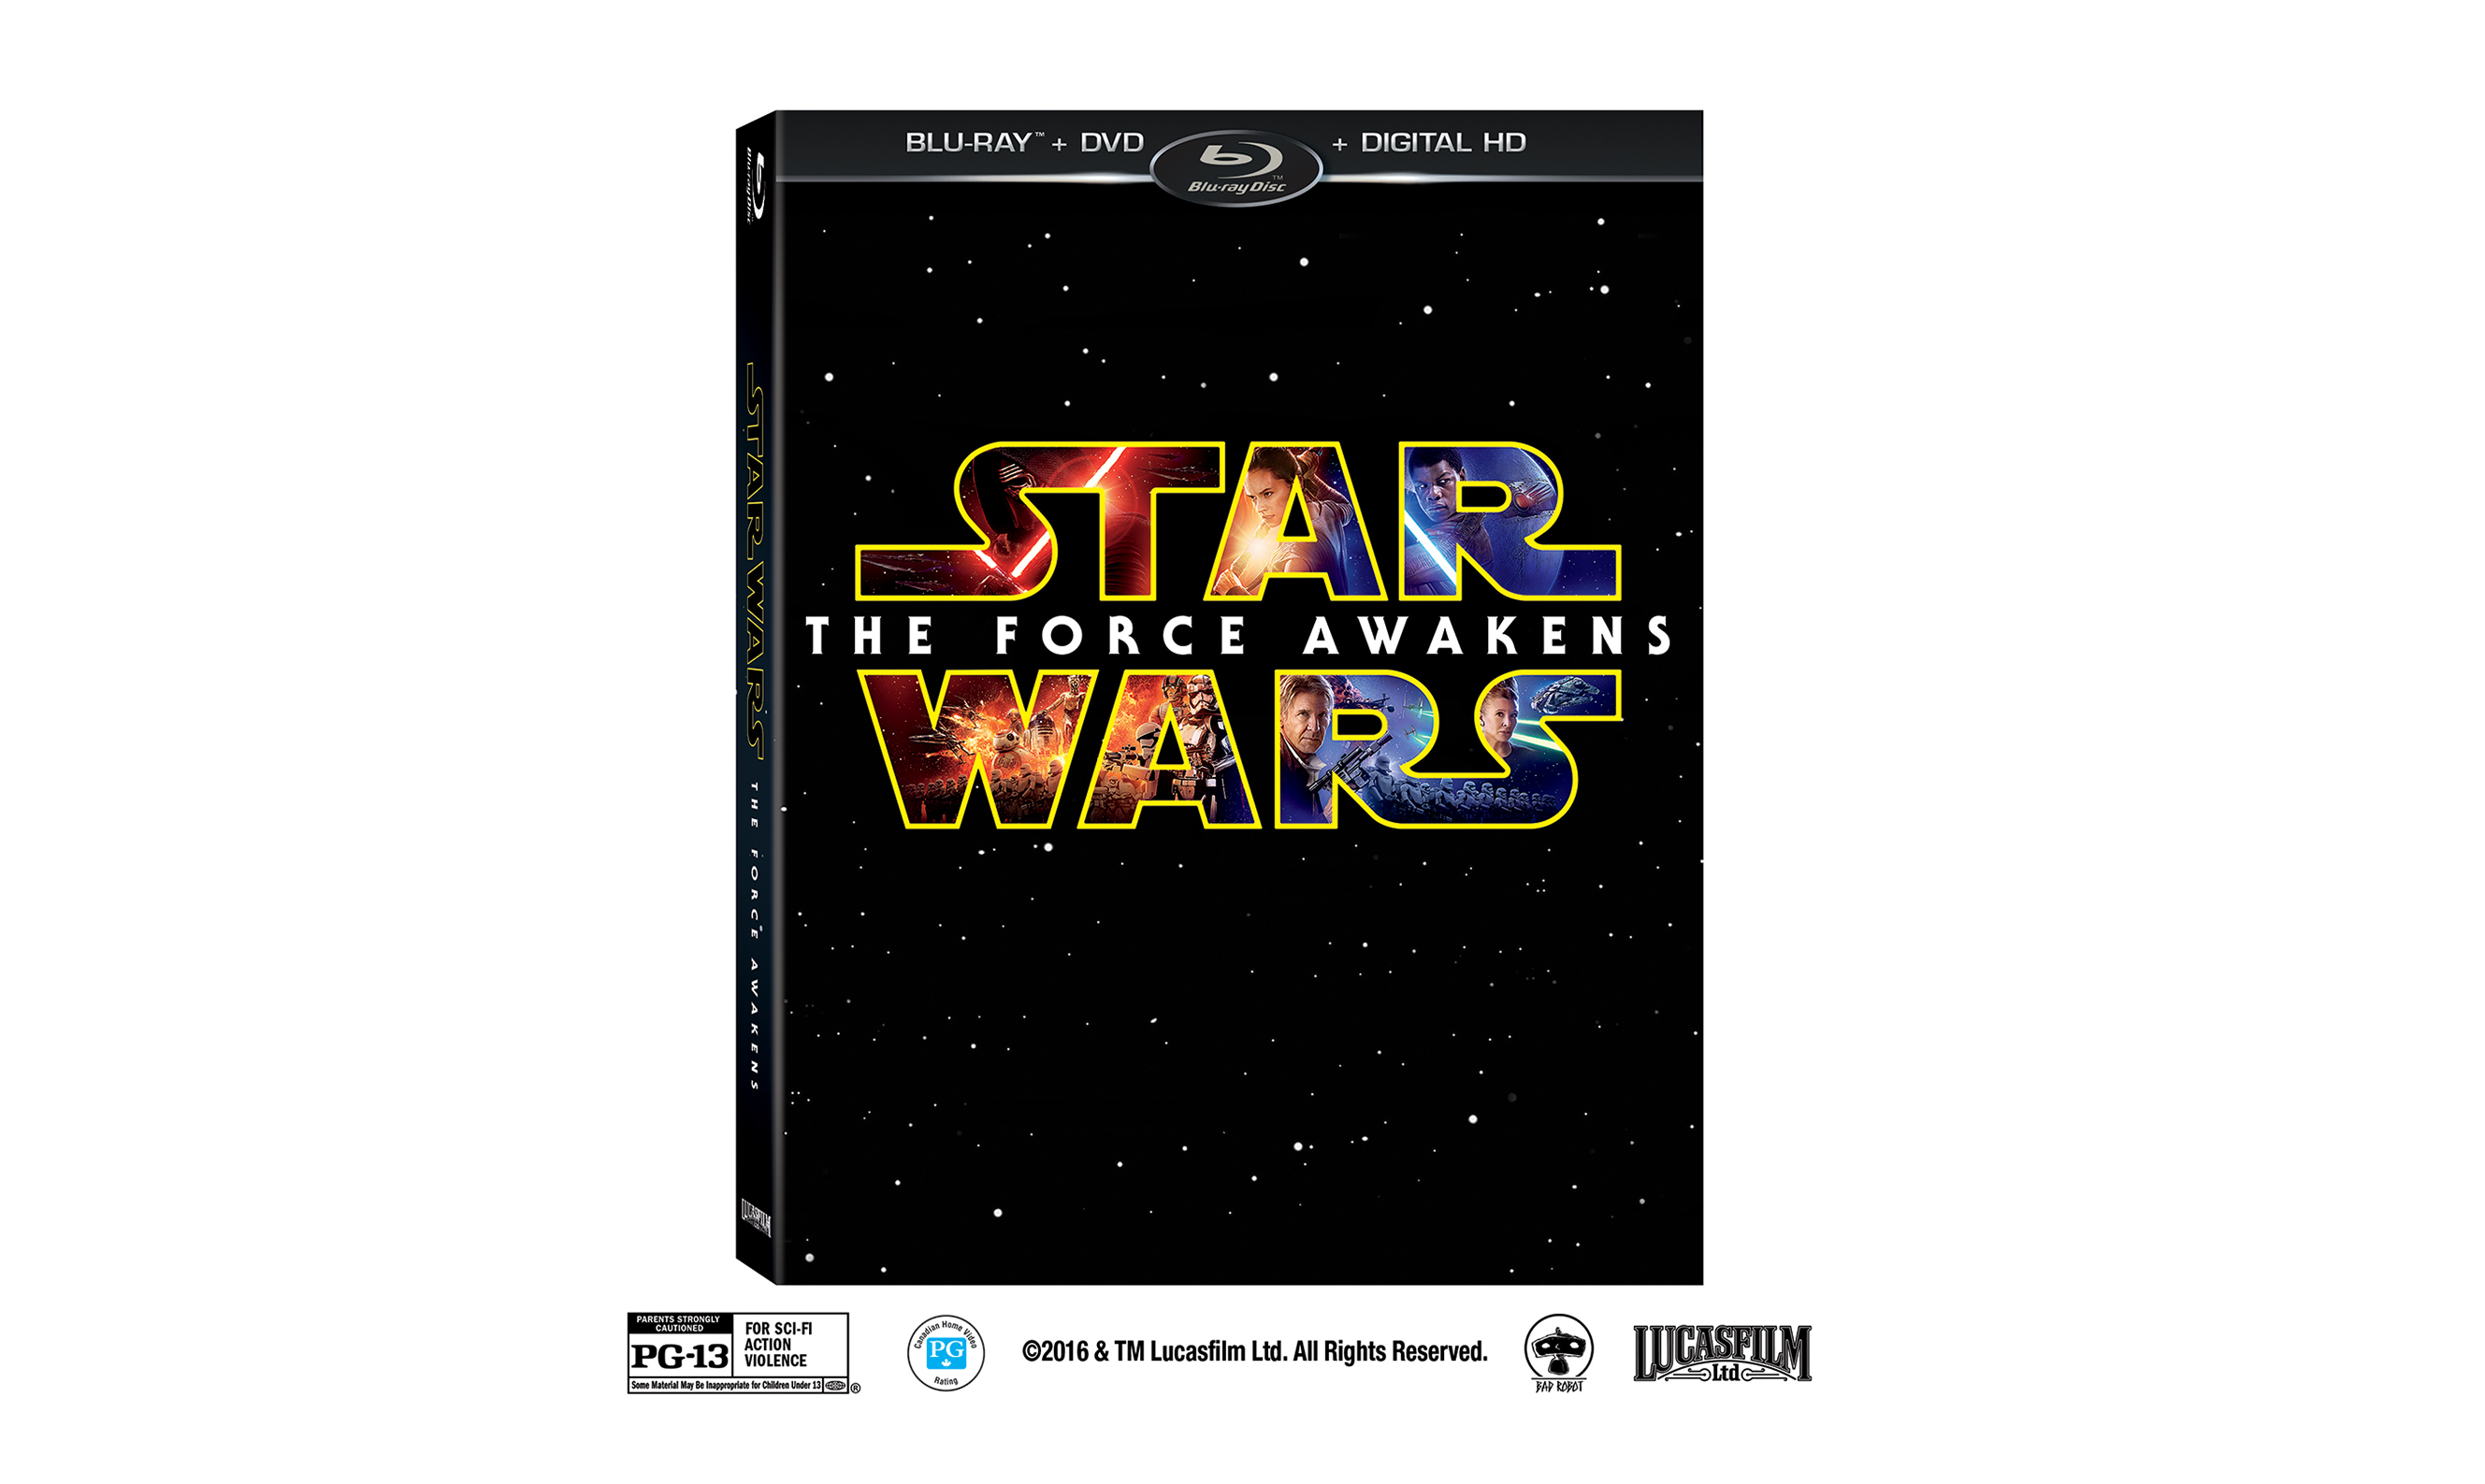 Star Wars: The Force Awakens is available on Digital HD April 1st and Blu-ray April 5th